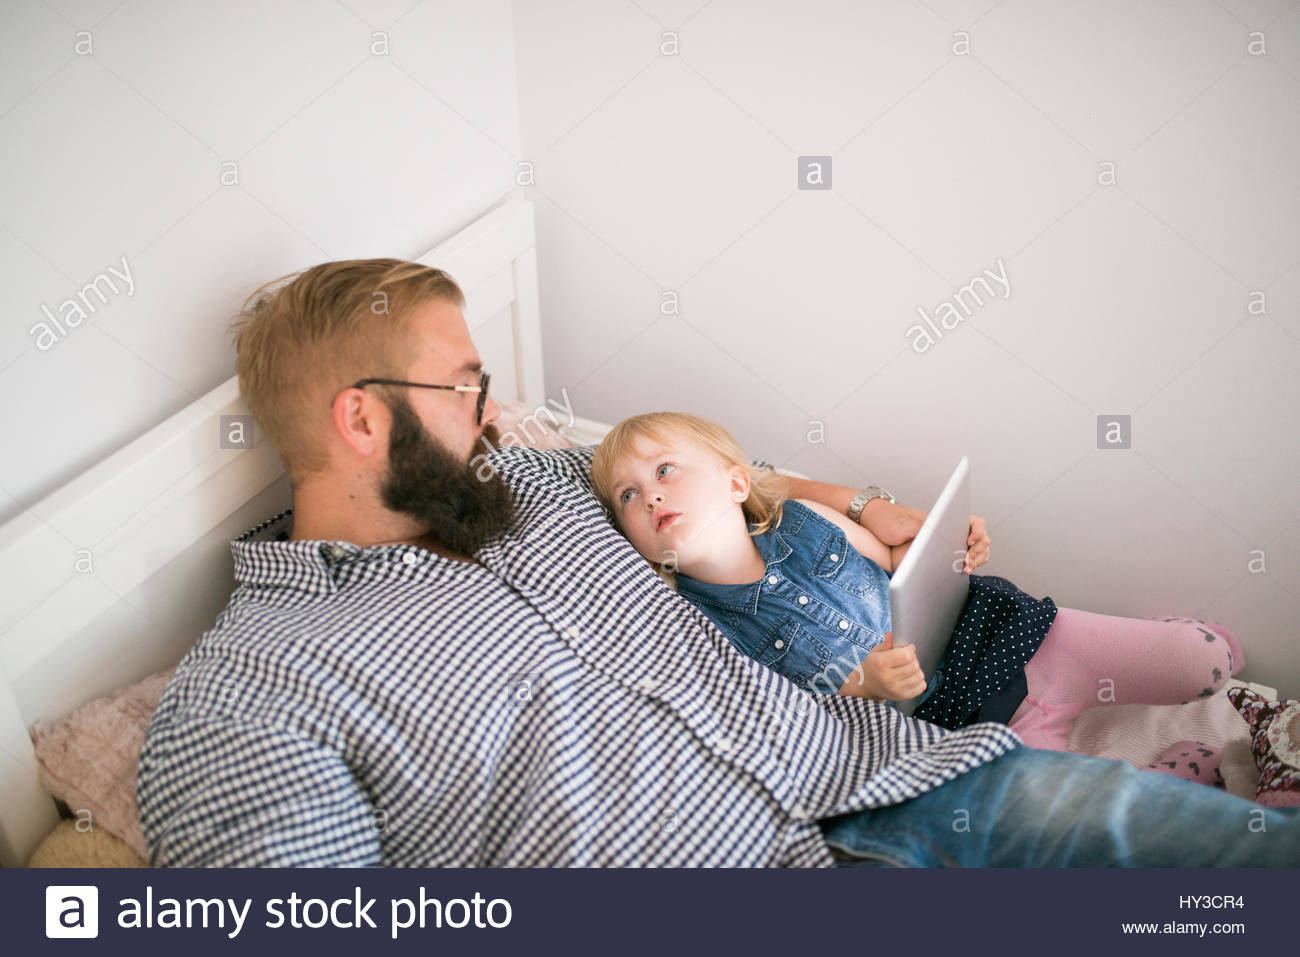 Sweden, Father lying in bed with daughter (2-3) - Stock Image